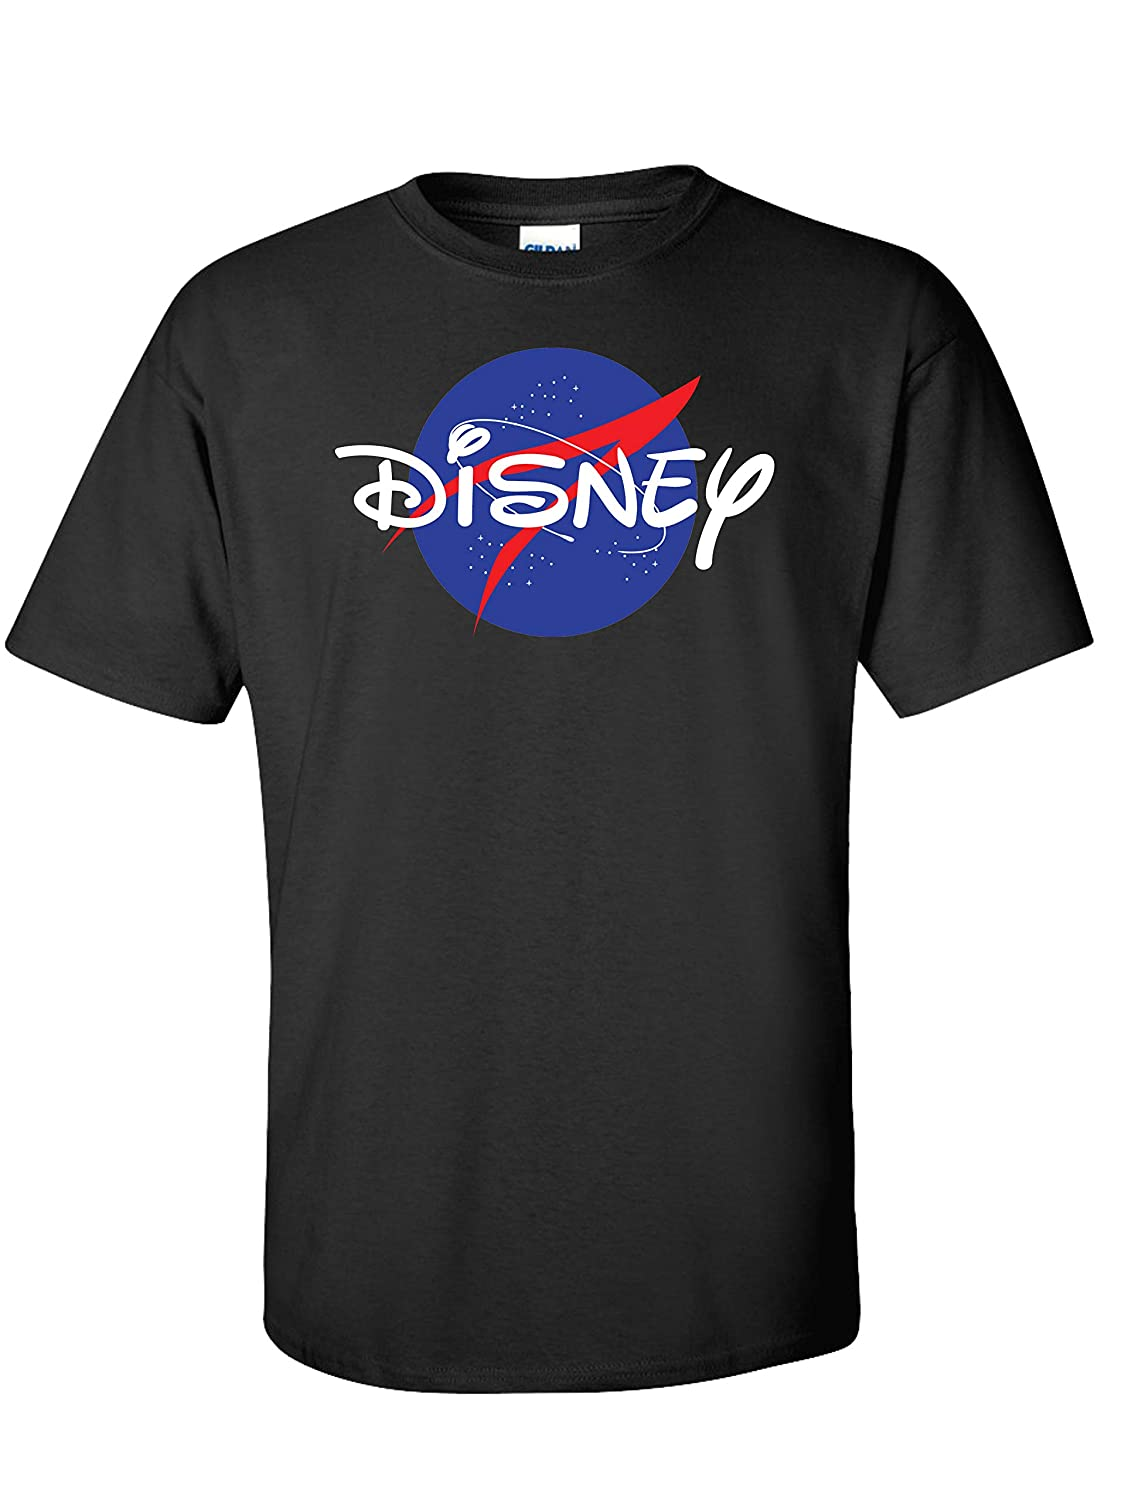 Free shipping on posting reviews One Max 81% OFF of a Kind Disney Cross Over Logo NASA - Background with Yout